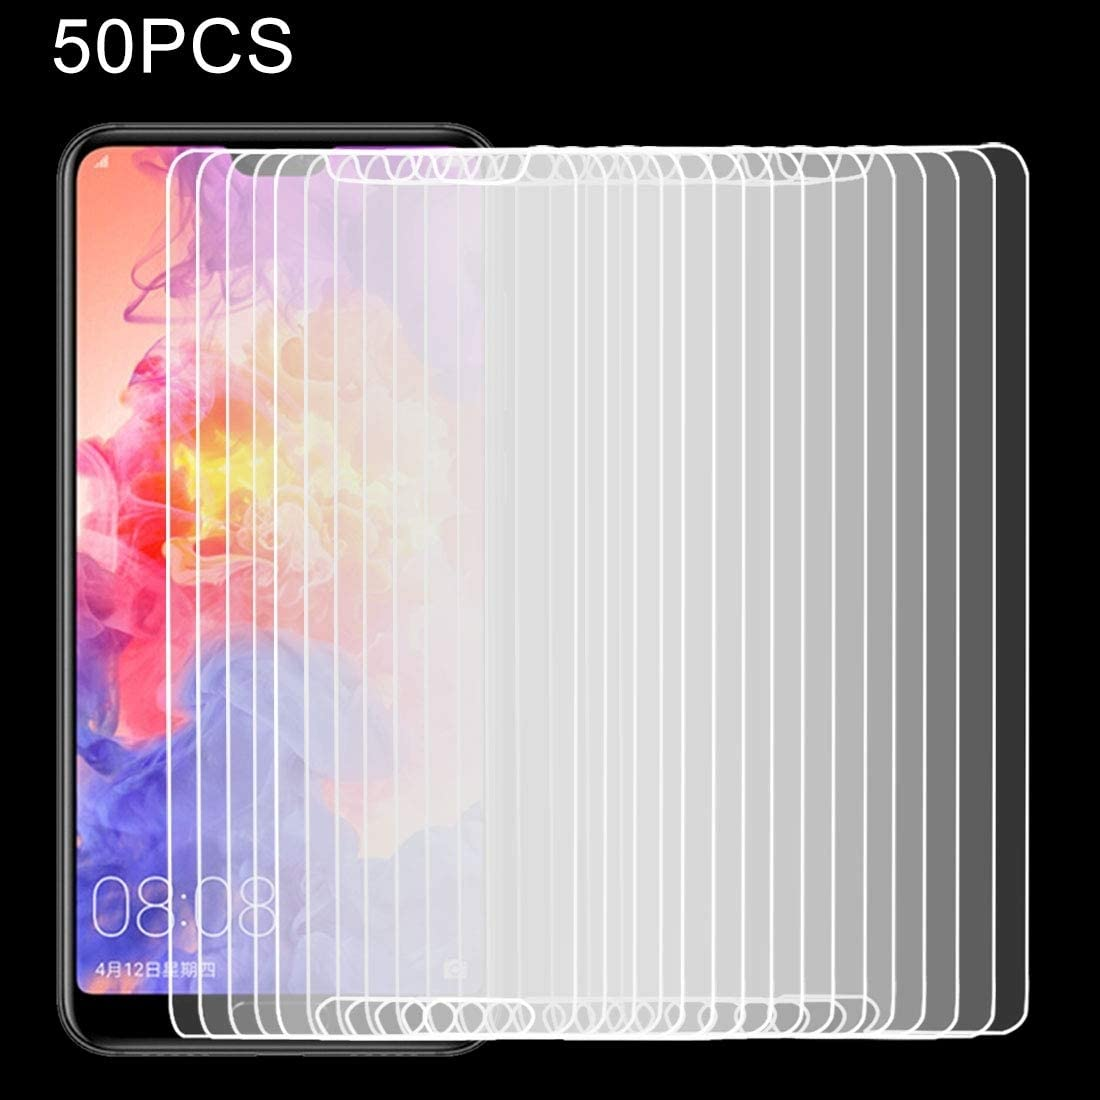 GzPuluz Glass Protector Film 50 PCS for Huawei P20 Pro 0.26mm 9H Surface Hardness 2.5D Explosion-Proof Tempered Glass Screen Film No Retail Package